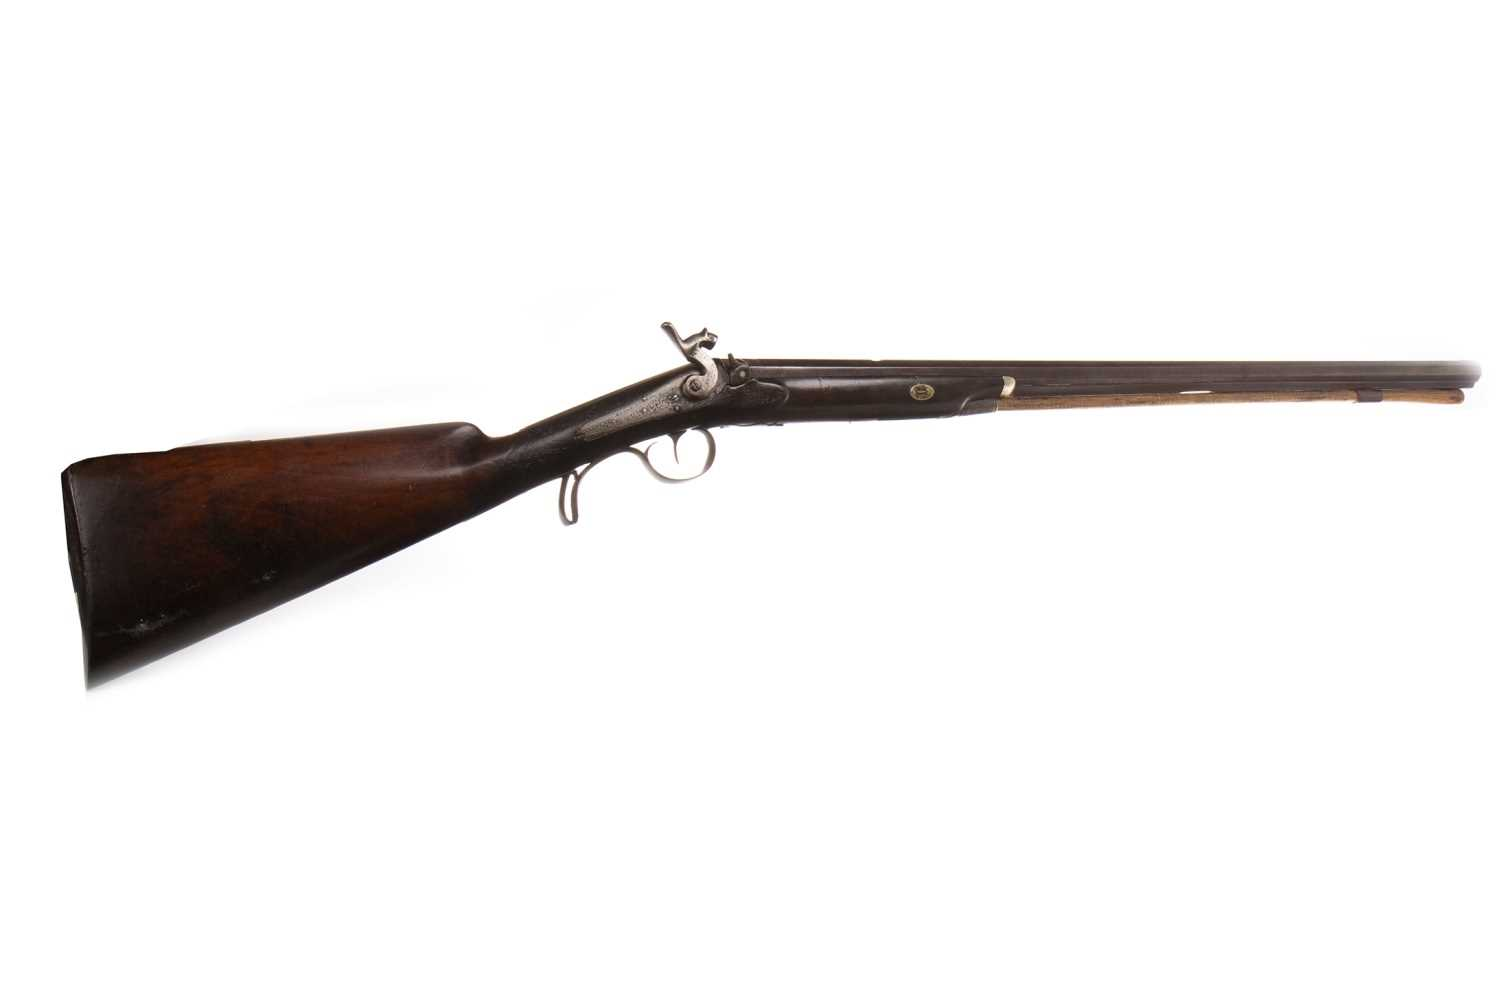 Lot 835-A 19TH CENTURY PERCUSSION MUSKET BY HENRY ELWELL